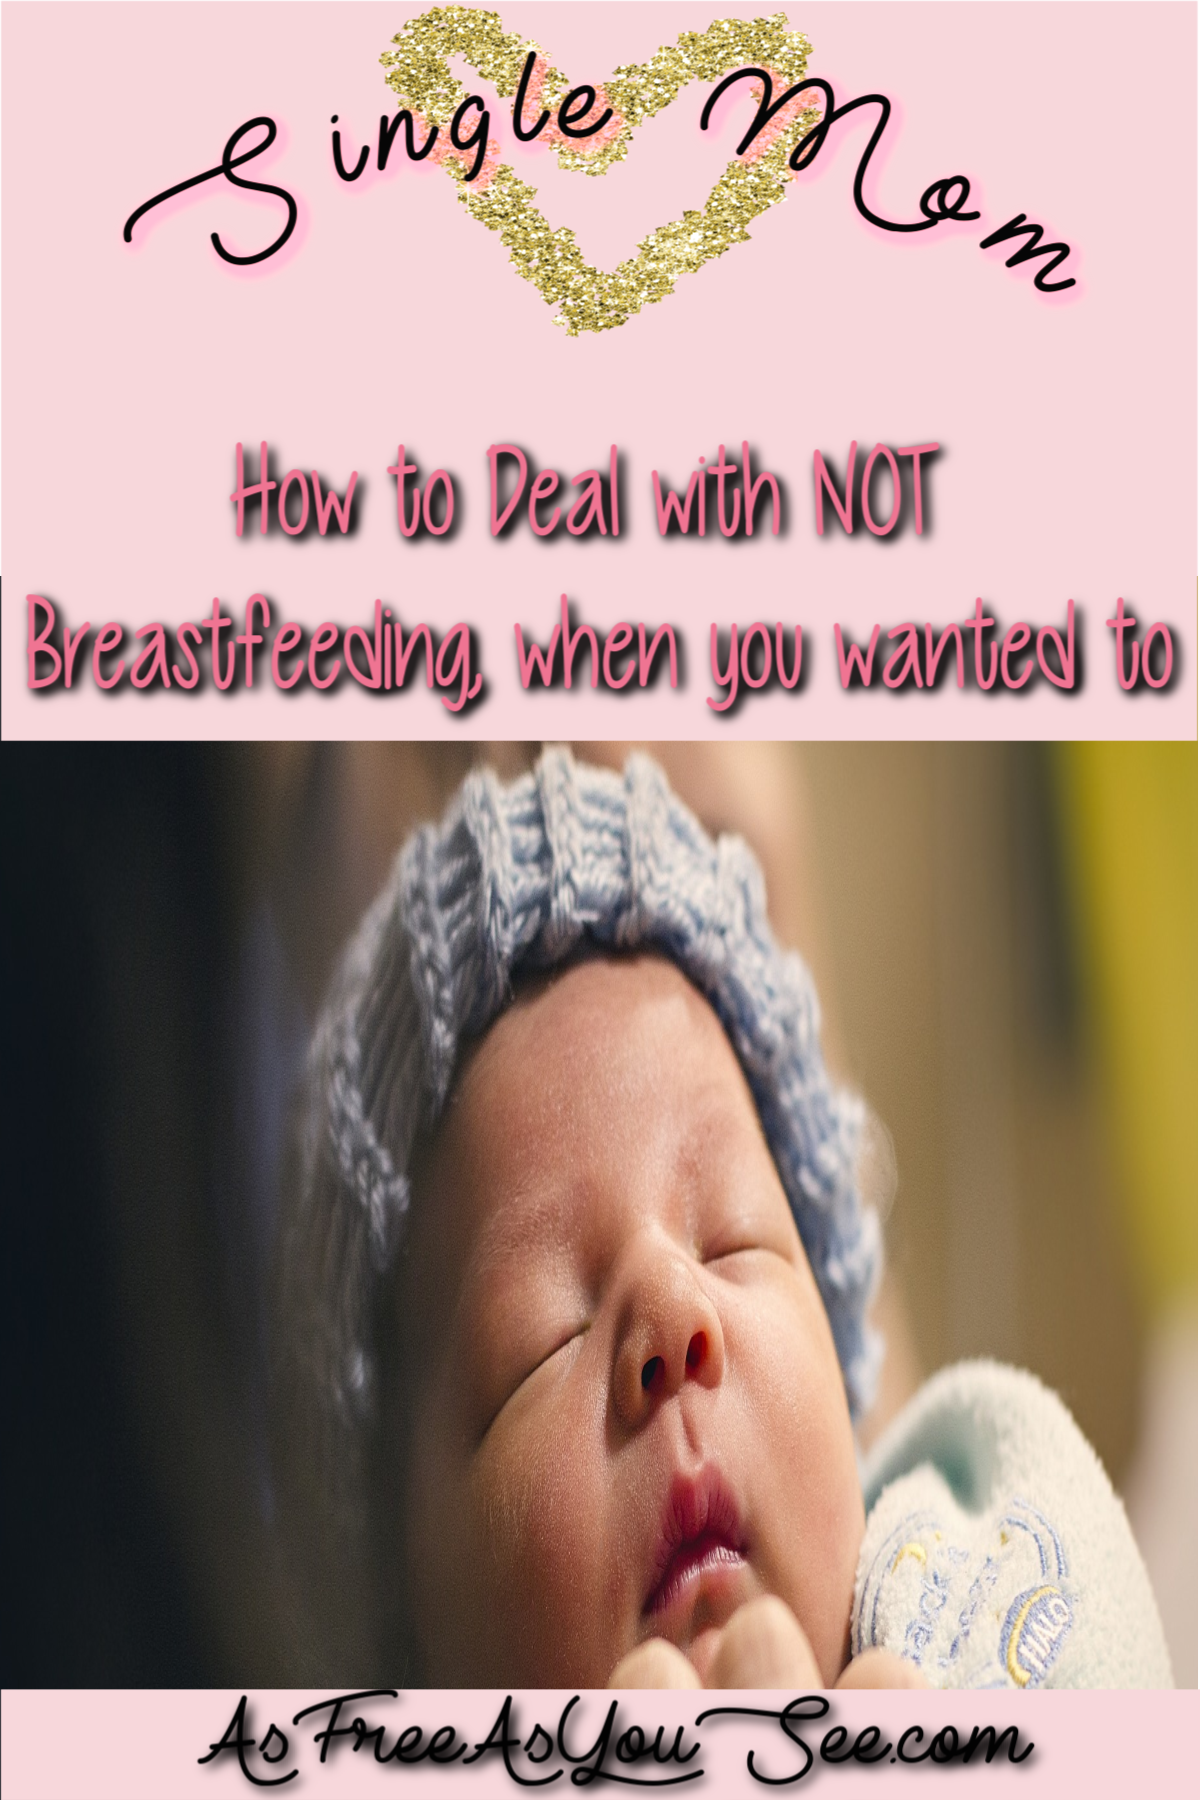 In this how-to blog, learn how to deal with the inability to breastfeed postpartum.  Learn 5 tips that can help you through feelings and triggers of failure and inadequacy during your special time as a mother.